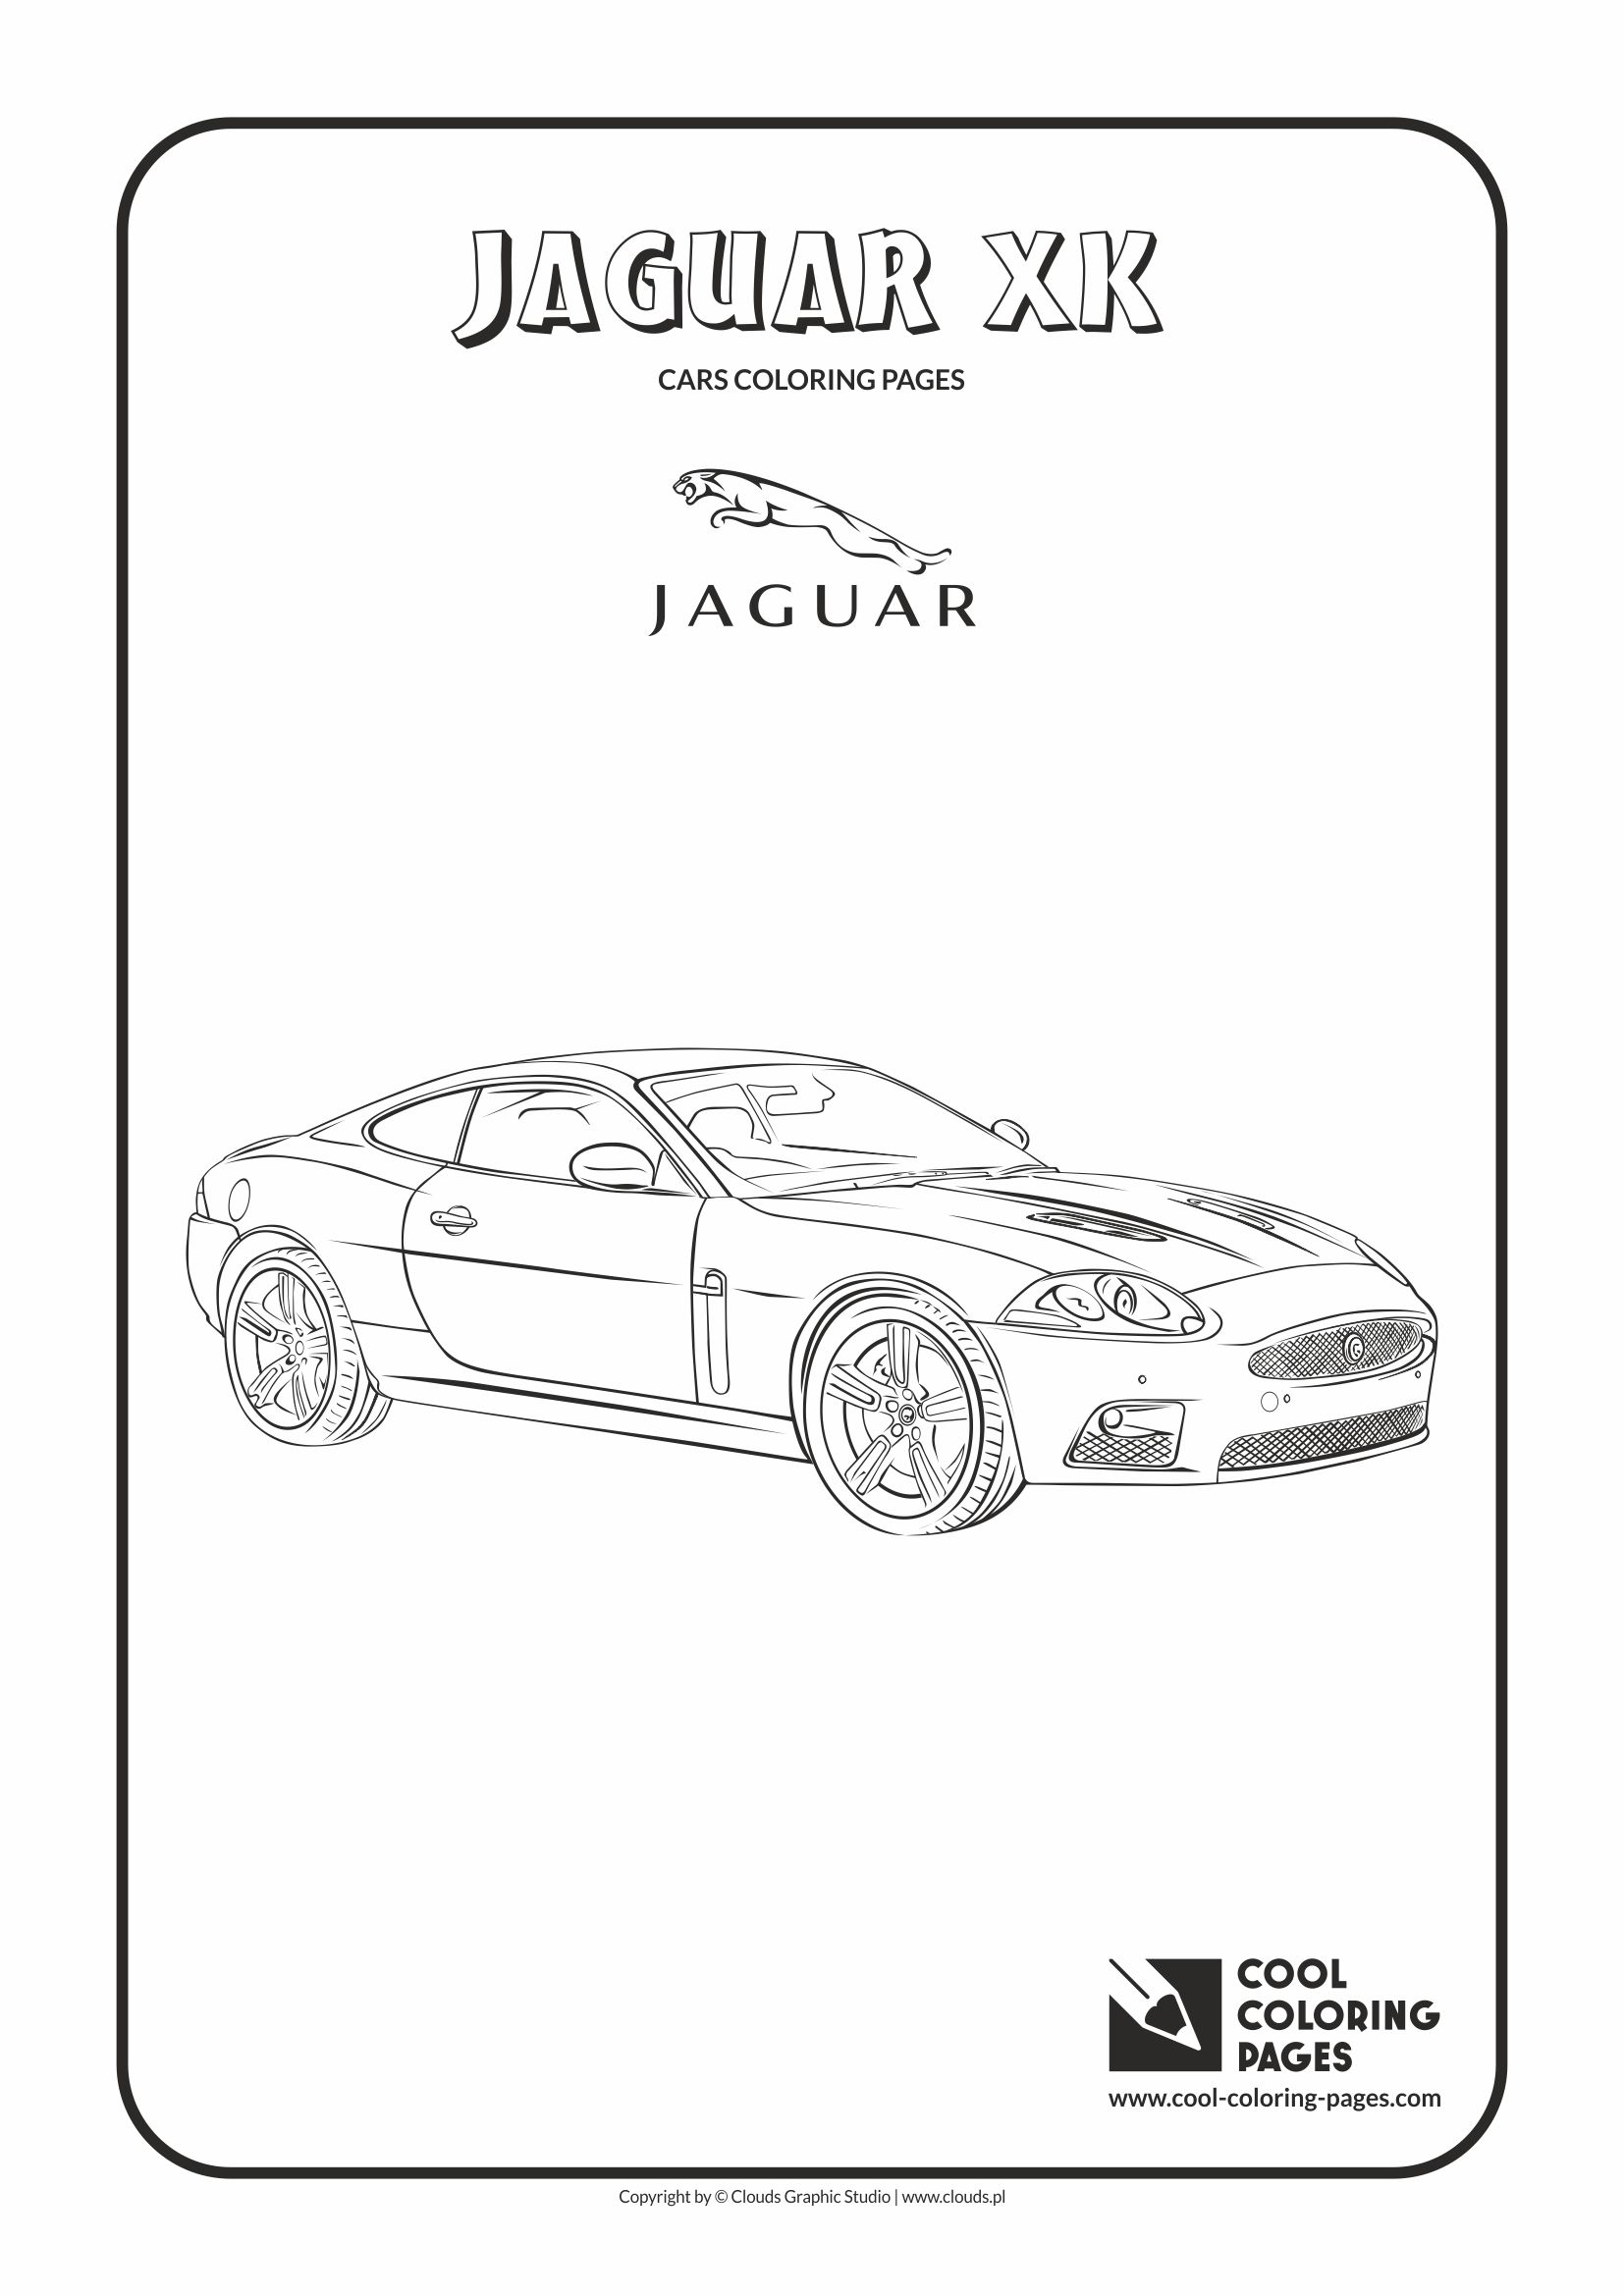 Favinjsuggest Jaguar Car Coloring Page on Jaguar F Pace